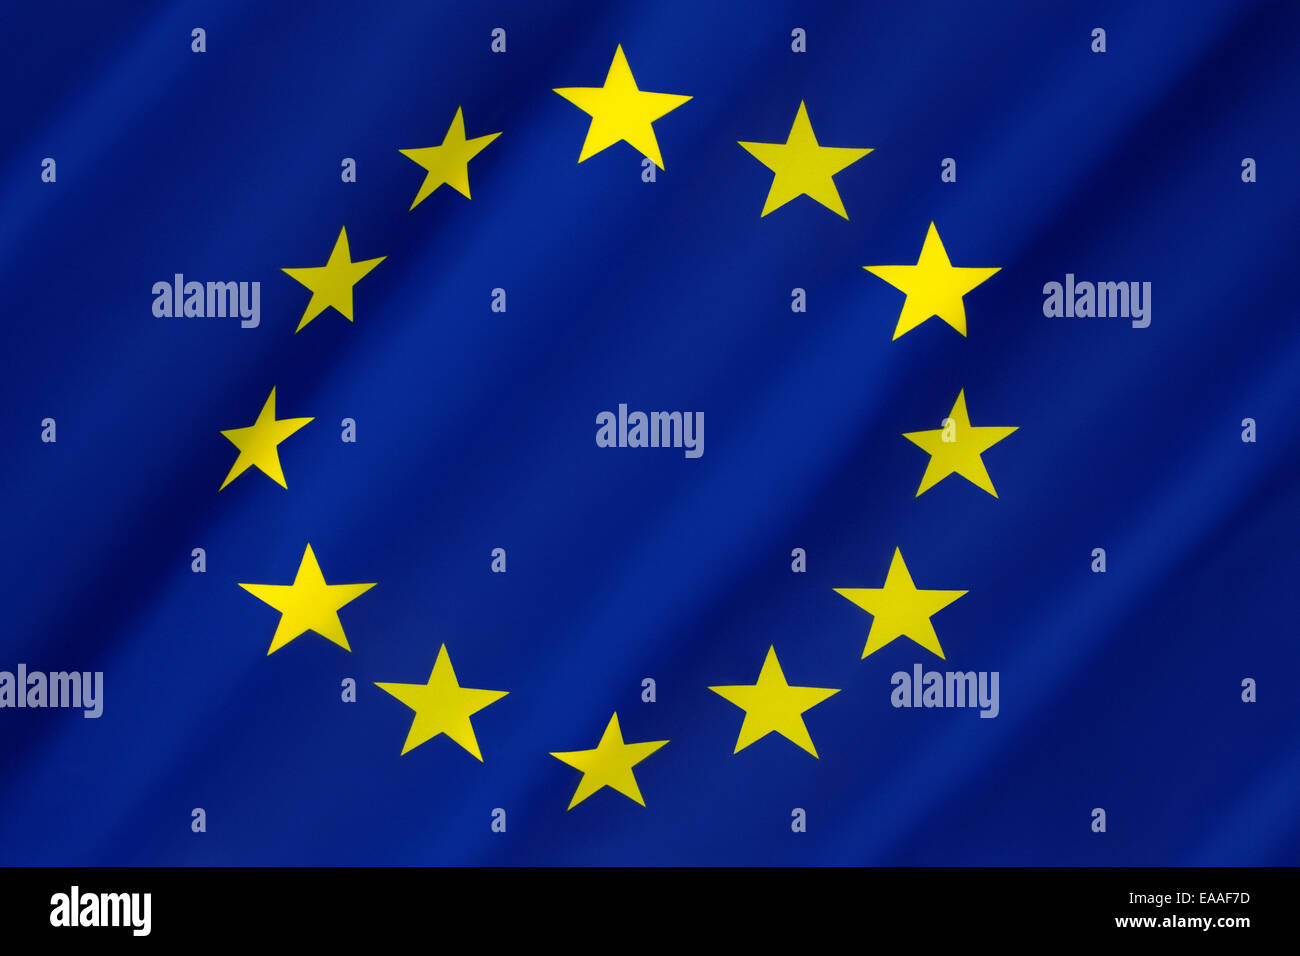 Flag of Europe - European Union - Stock Image